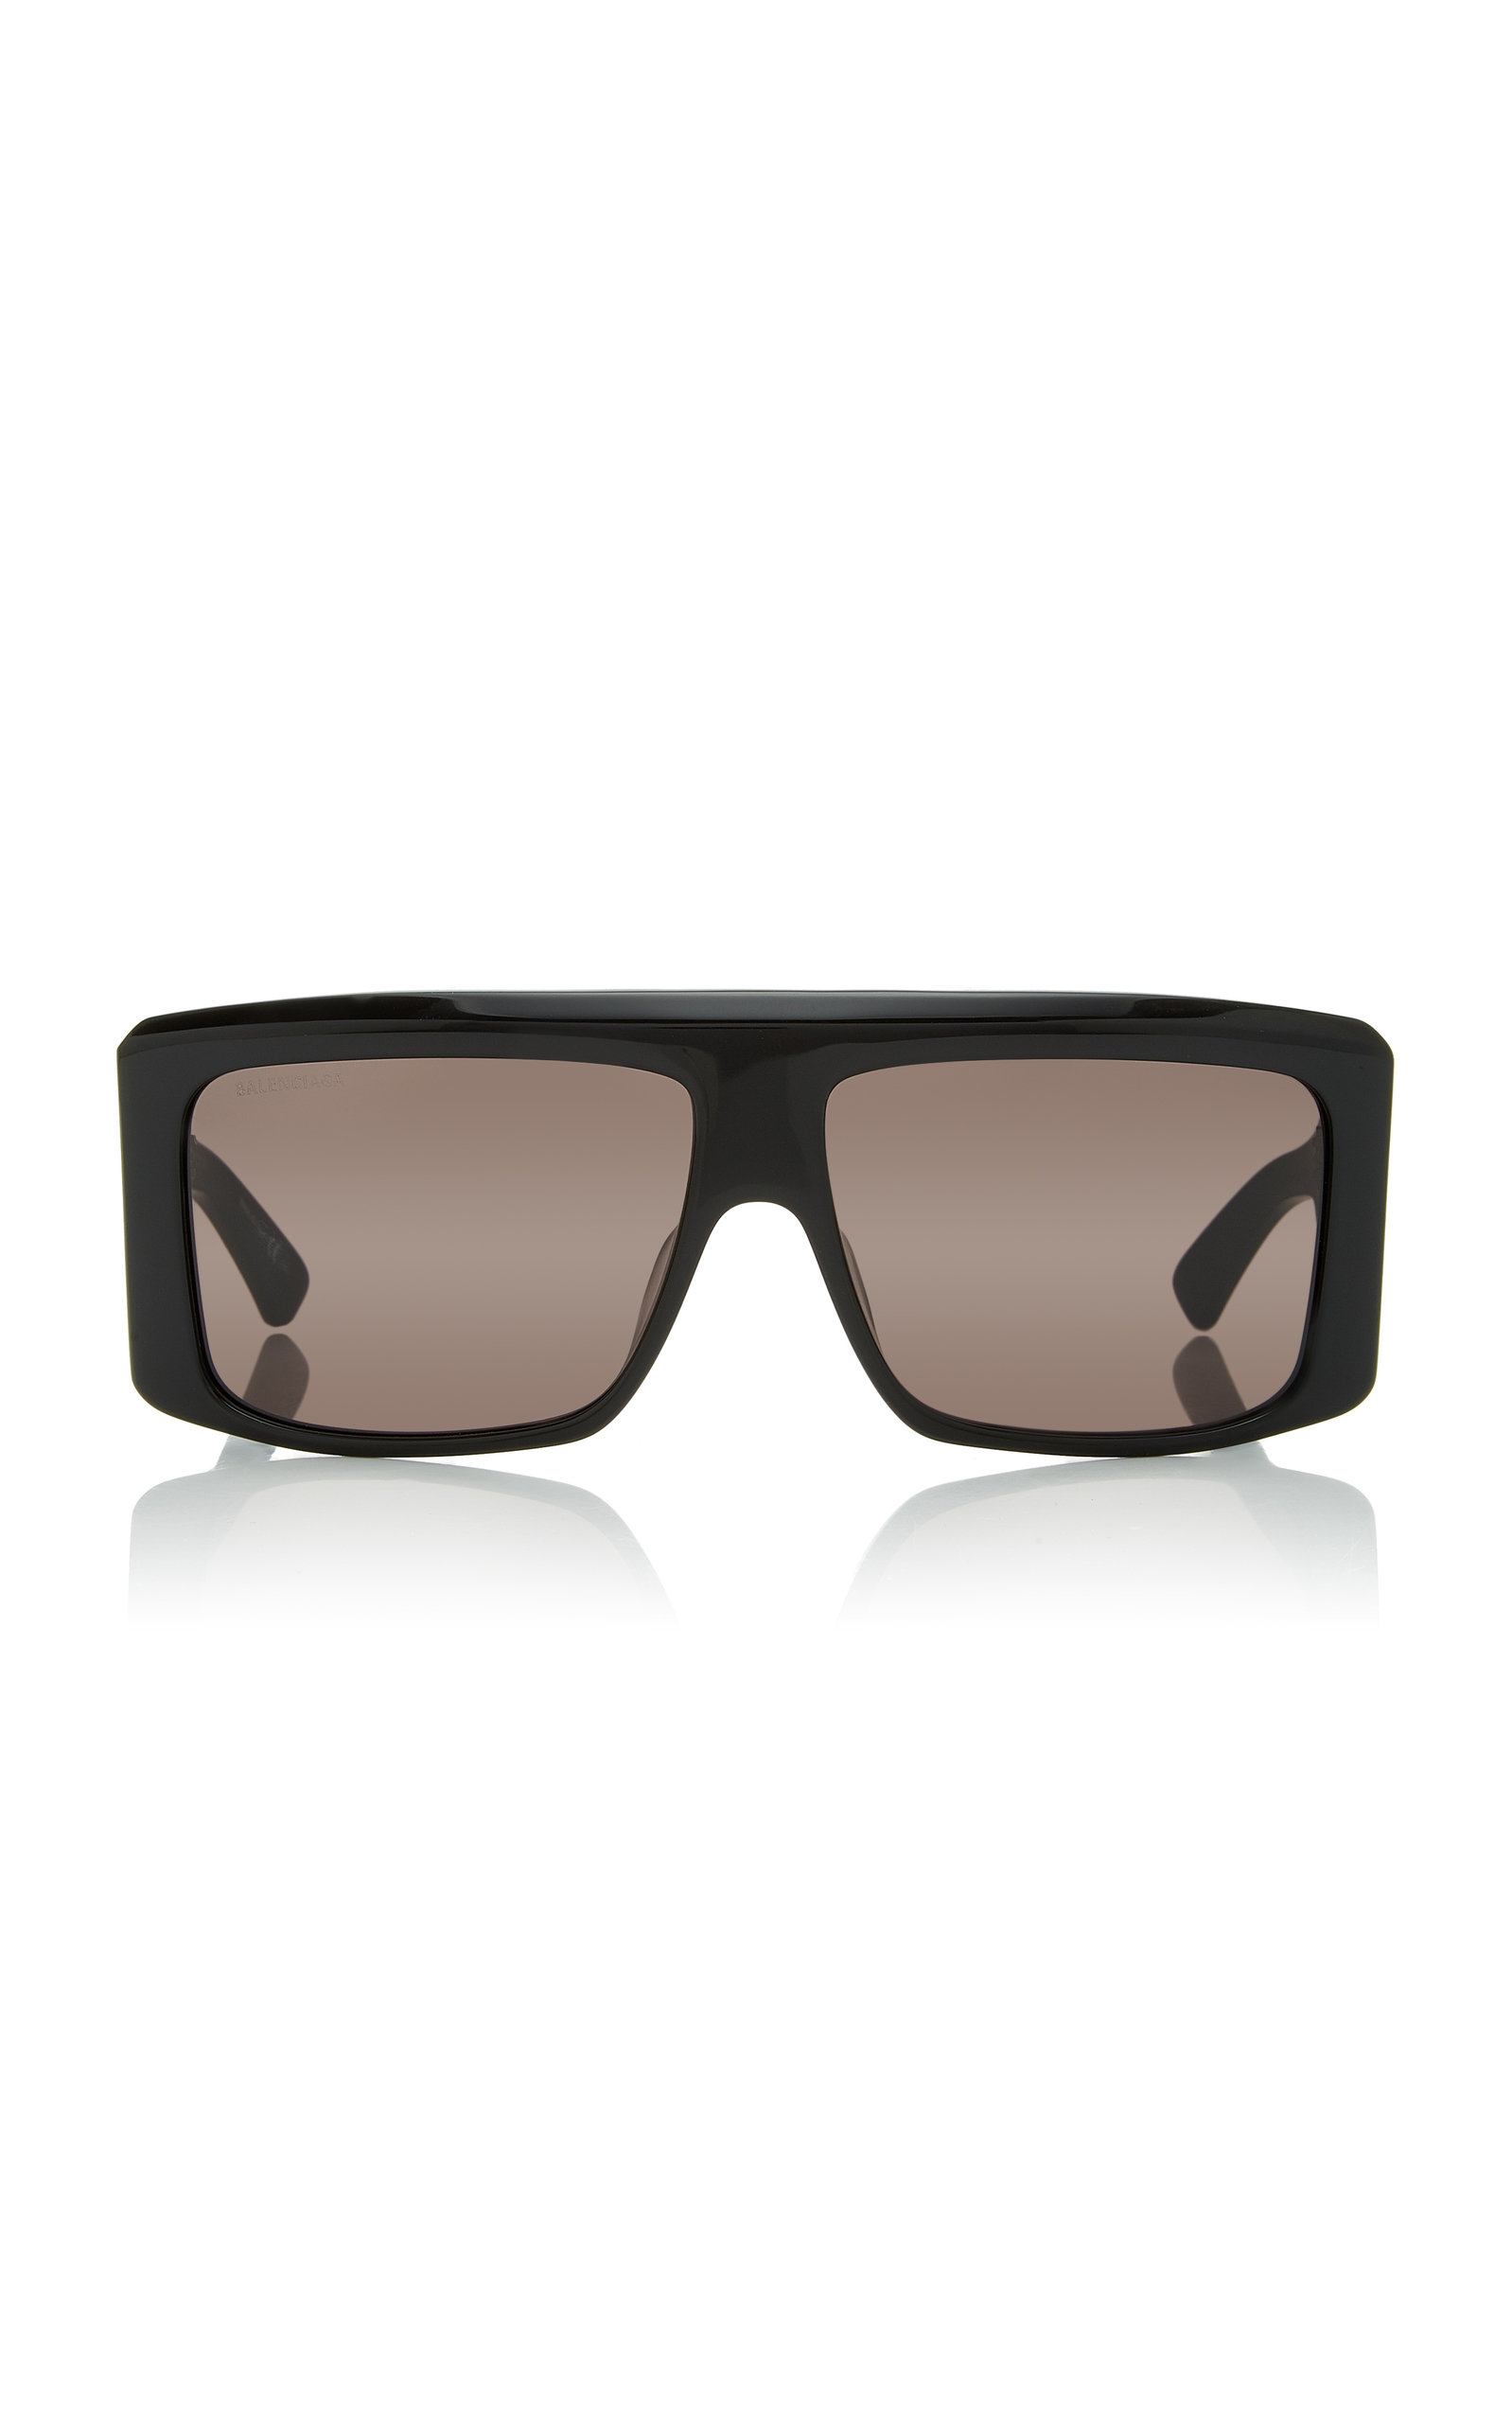 def3b06b79cd Balenciaga Square-Frame Acetate Sunglasses In Black | ModeSens